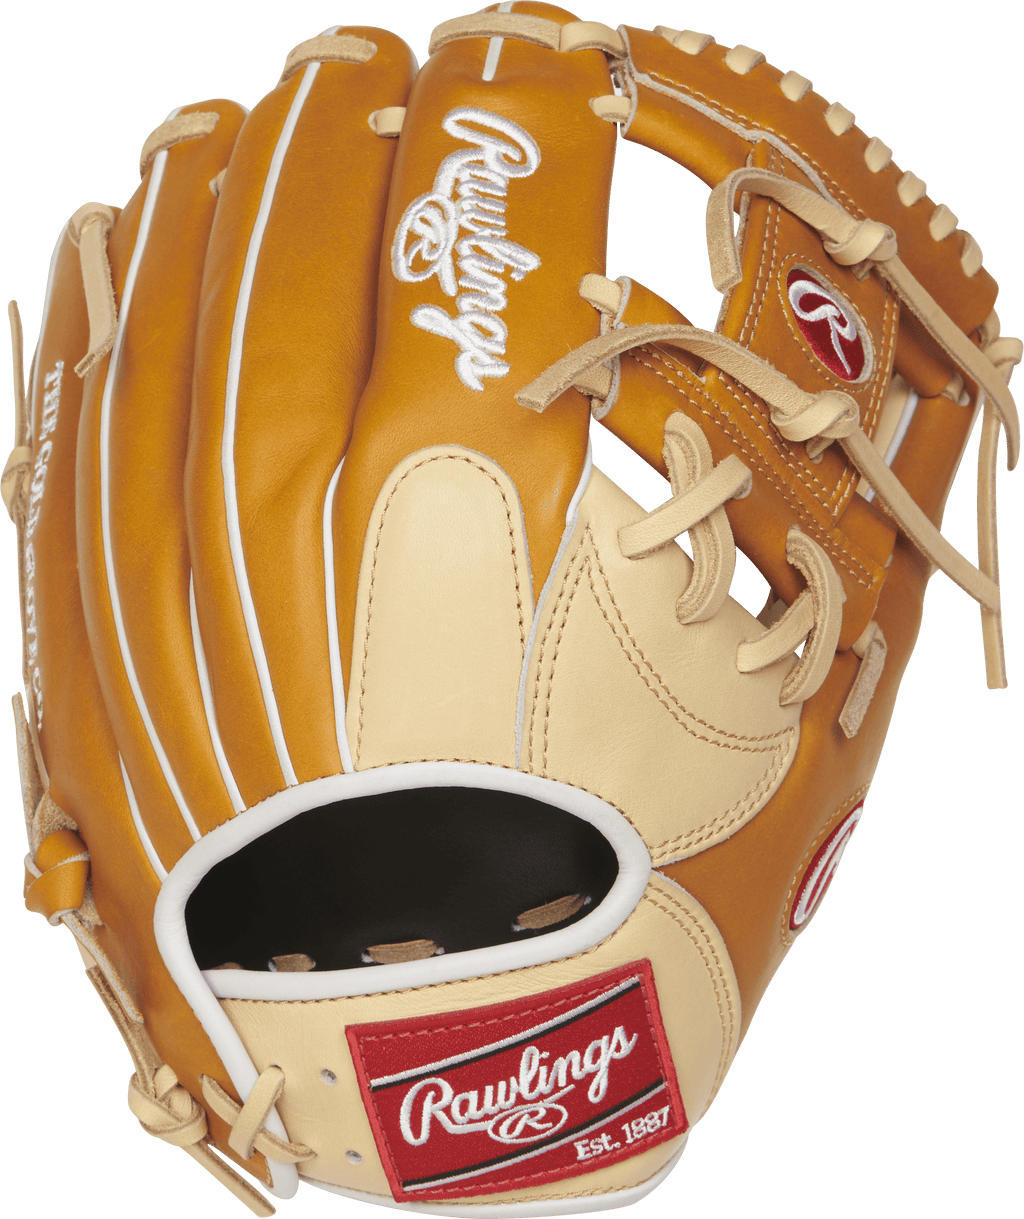 "Rawlings Heart of the Hide 11.5"" Infield Baseball Glove: PRONP4-2CTW at headbangersports.com"